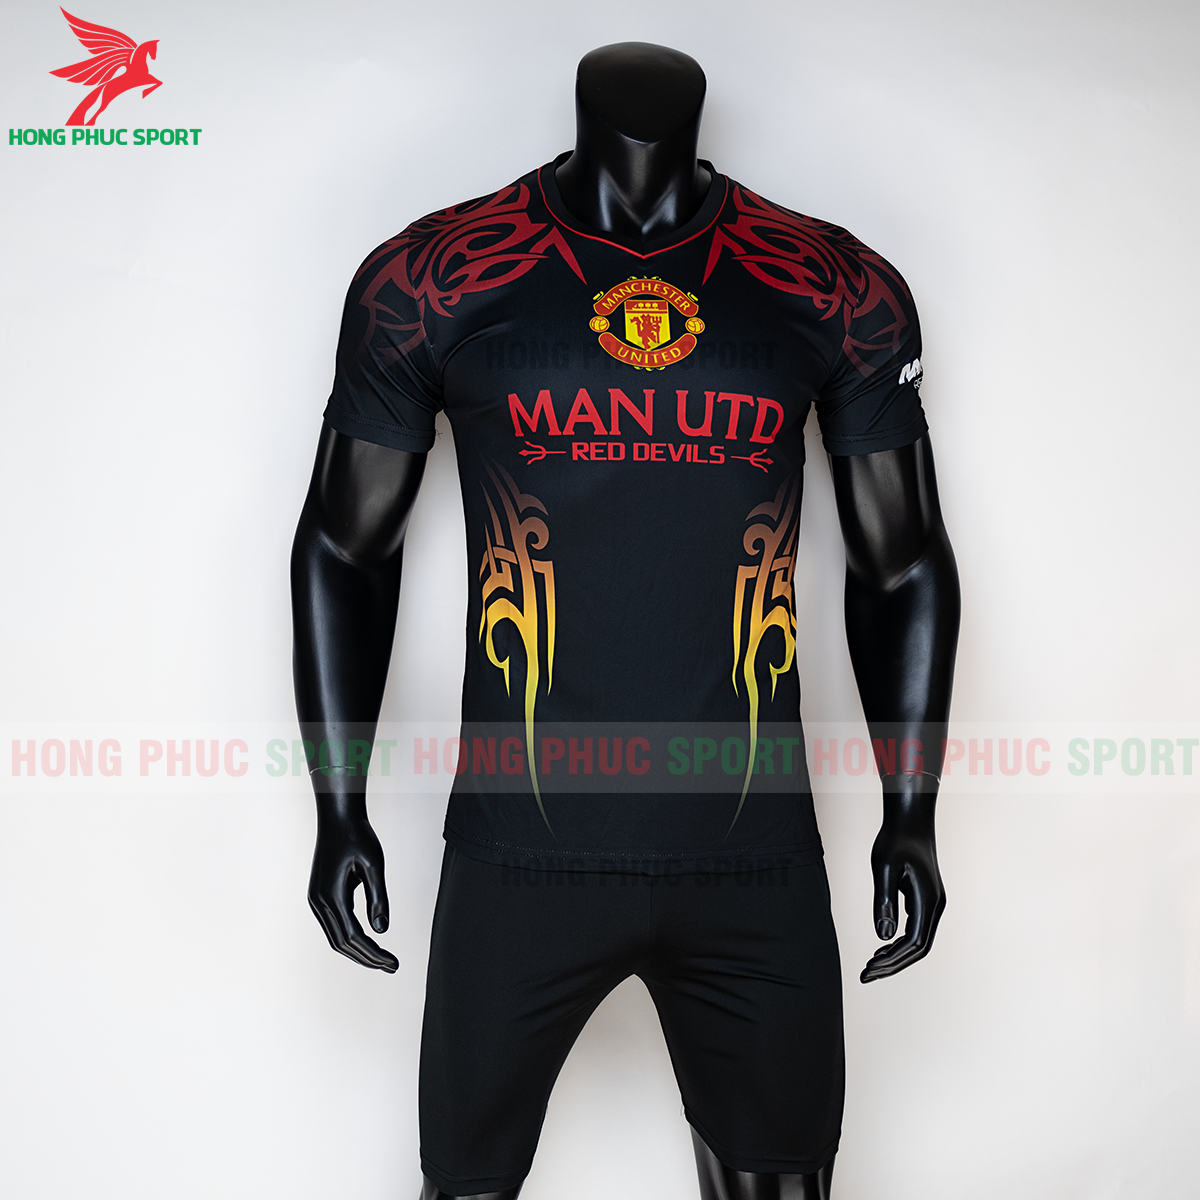 https://cdn.hongphucsport.com/unsafe/s4.shopbay.vn/files/285/ao-manchester-united-2020-phien-ban-fan-1-5f72df75e791a.png